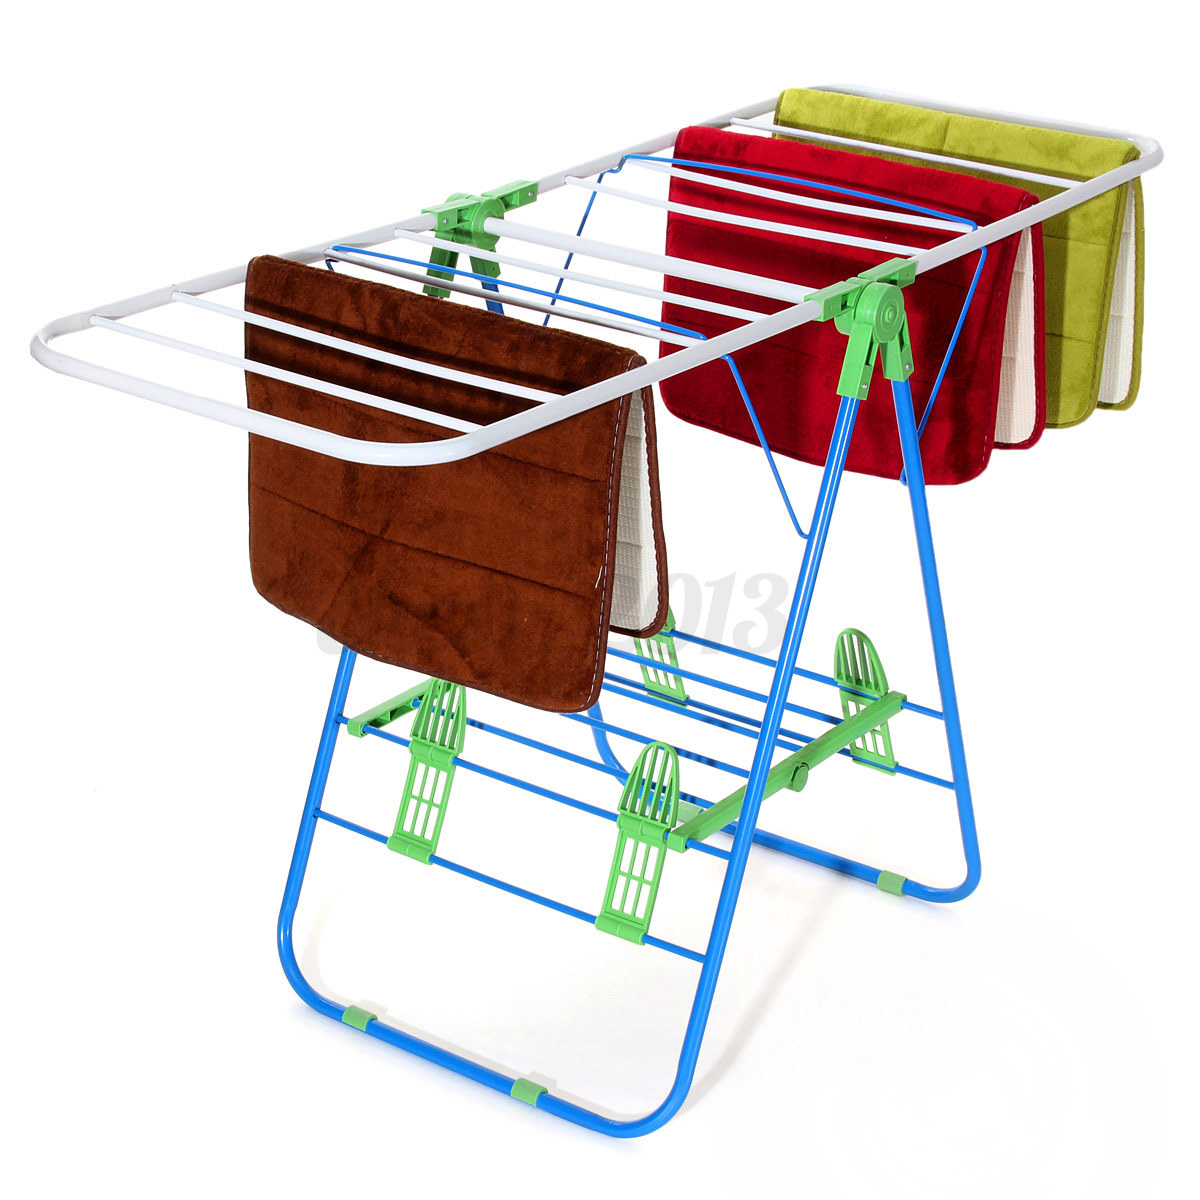 Clothes Drying Y Airer Dry Rack Indoor Folding Garment